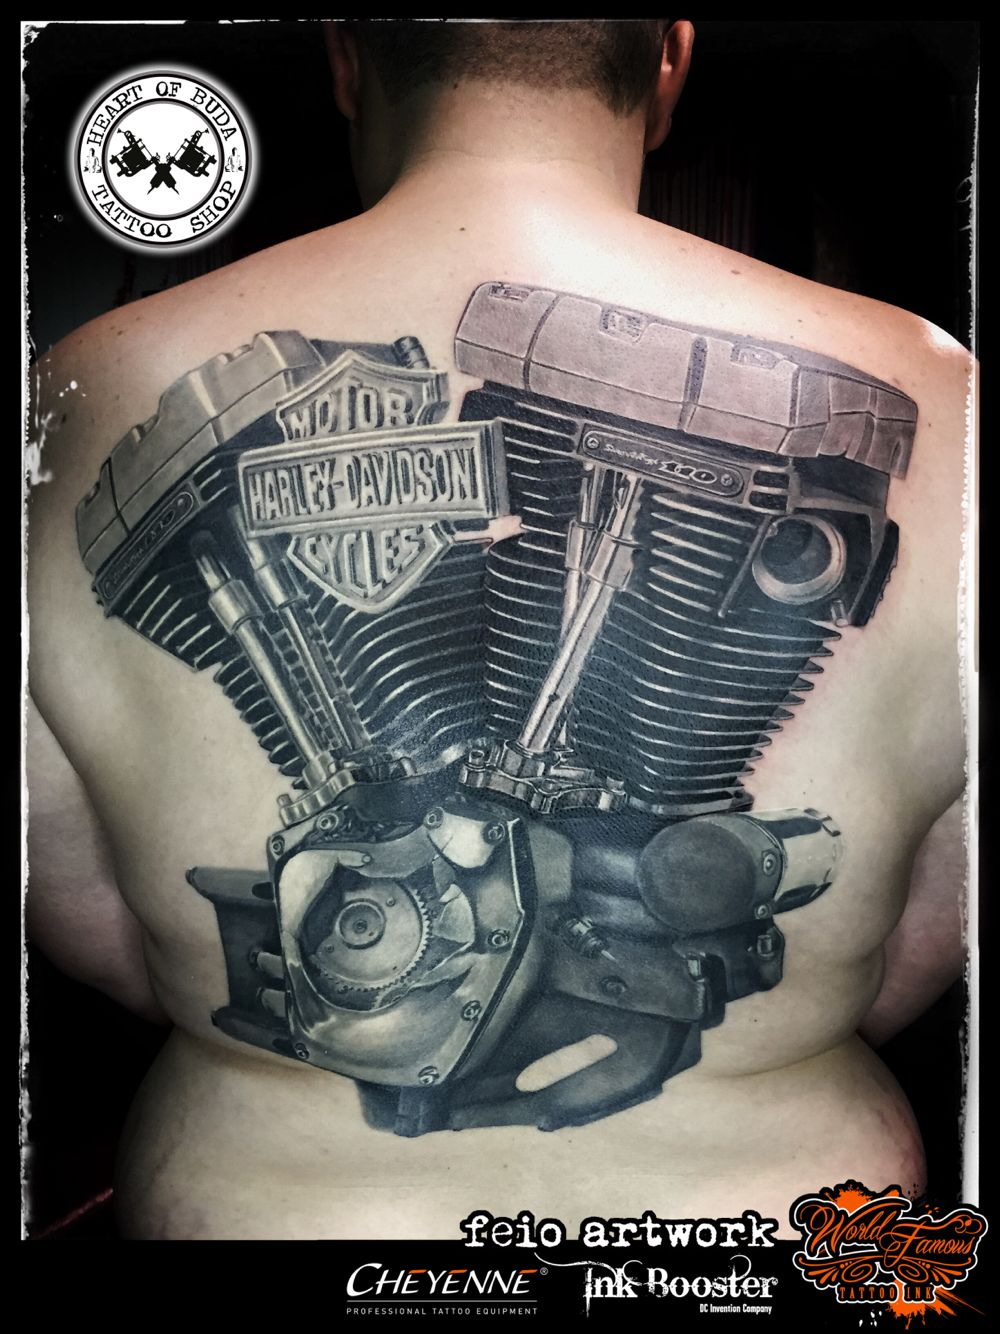 Motor Harley Davidson Cycles engine tattoo | Tattoo ... - photo#13